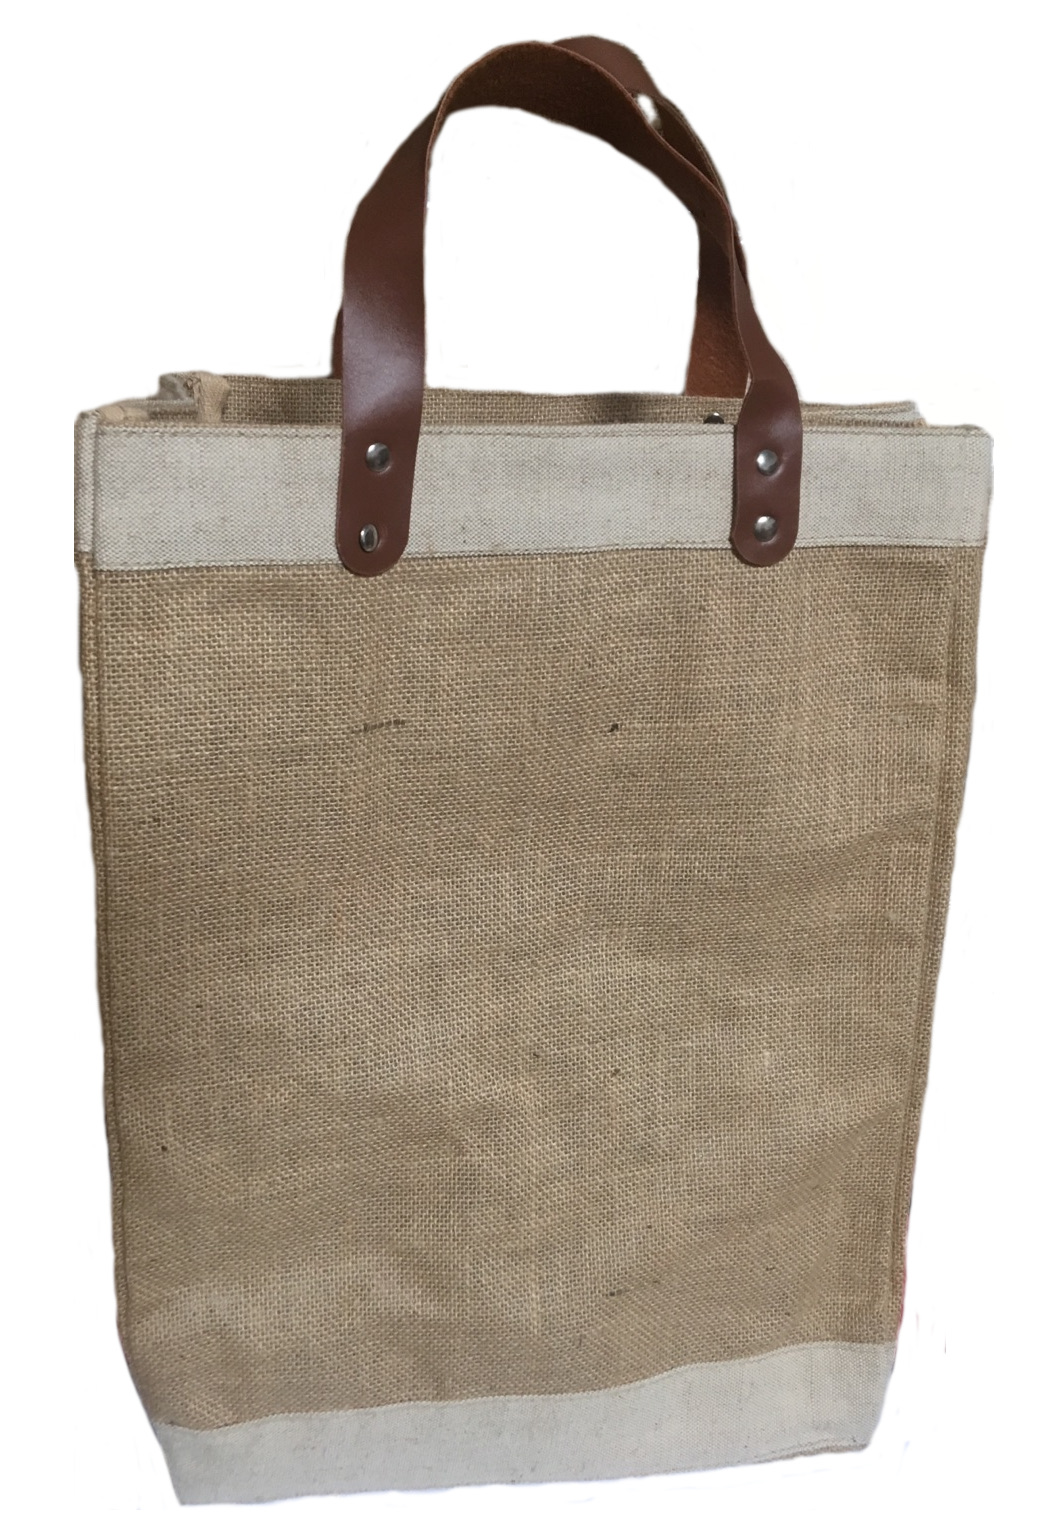 Jute Tote Bag With Faux Leather Handles 13 W X